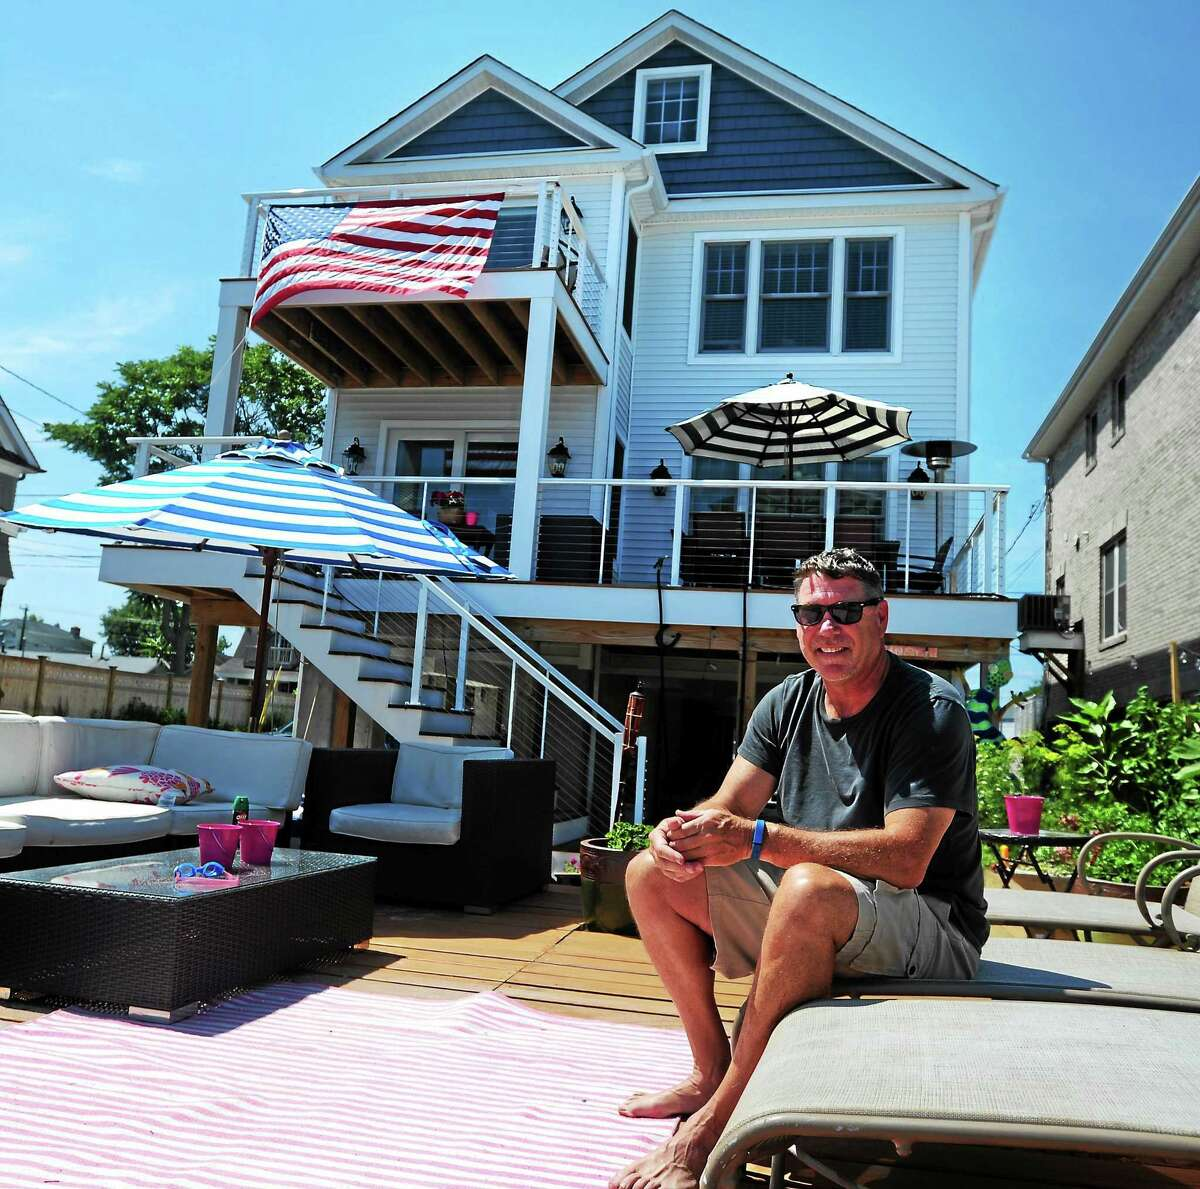 John McNamara sits in front of his home by Bethel-based Westchester Modular Homes, on July 10, 2015 in Fairfield, Conn. Since the state accepted their application to the program, Westchester Modular Homes has finished more than a dozen homes for victims of the Superstorm Sandy.